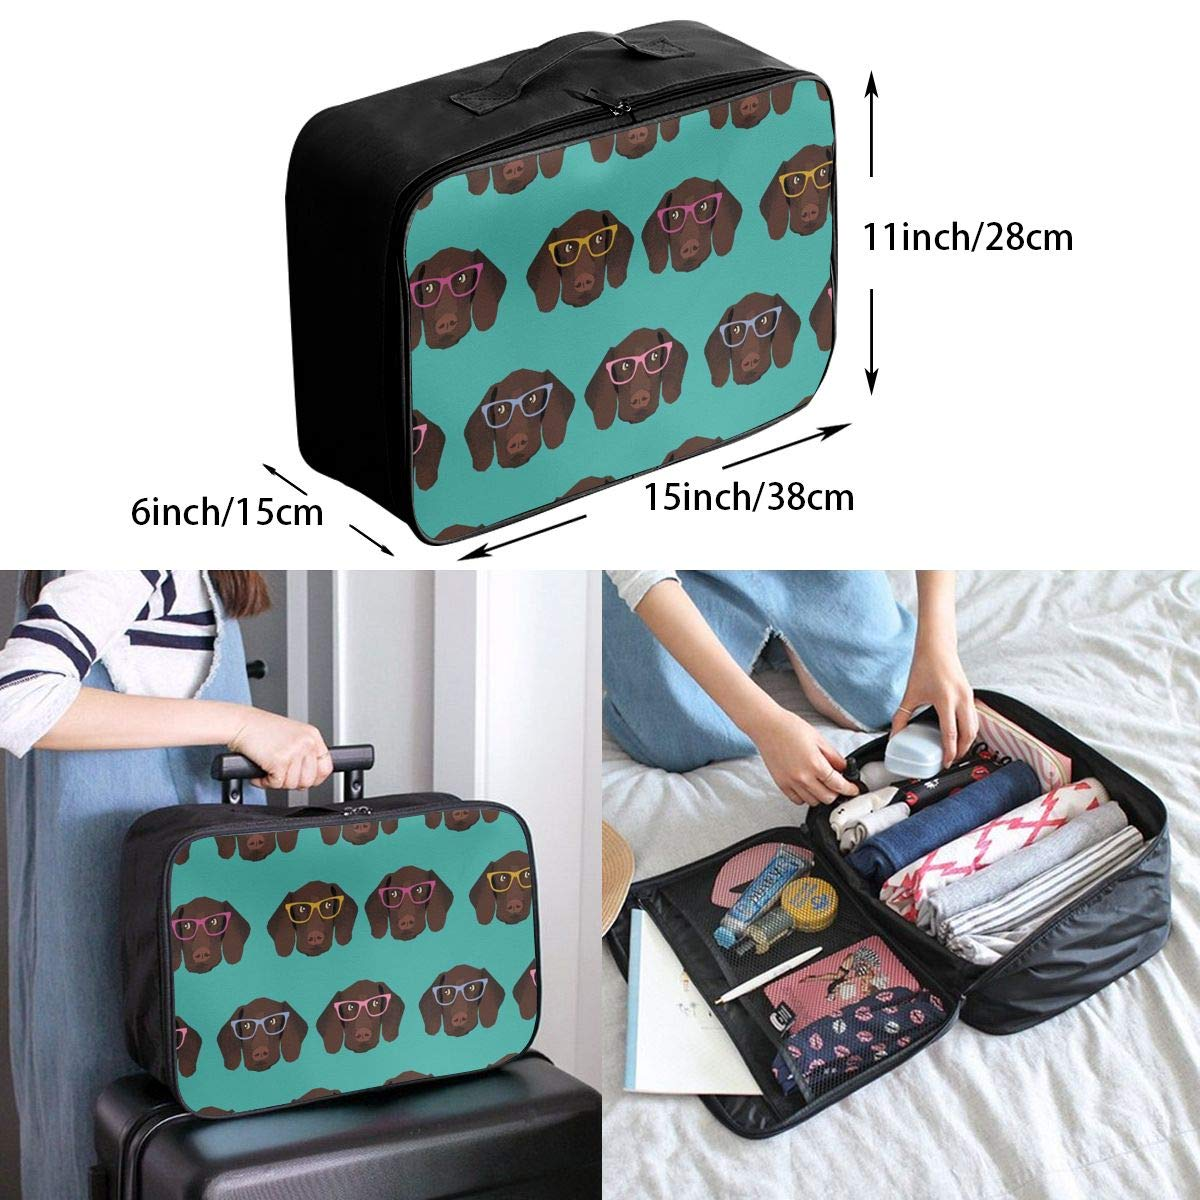 Lightweight Large Capacity Duffel Portable Luggage Bag German Shorthaired Pointer In Glasses Travel Waterproof Foldable Storage Carry Tote Bag